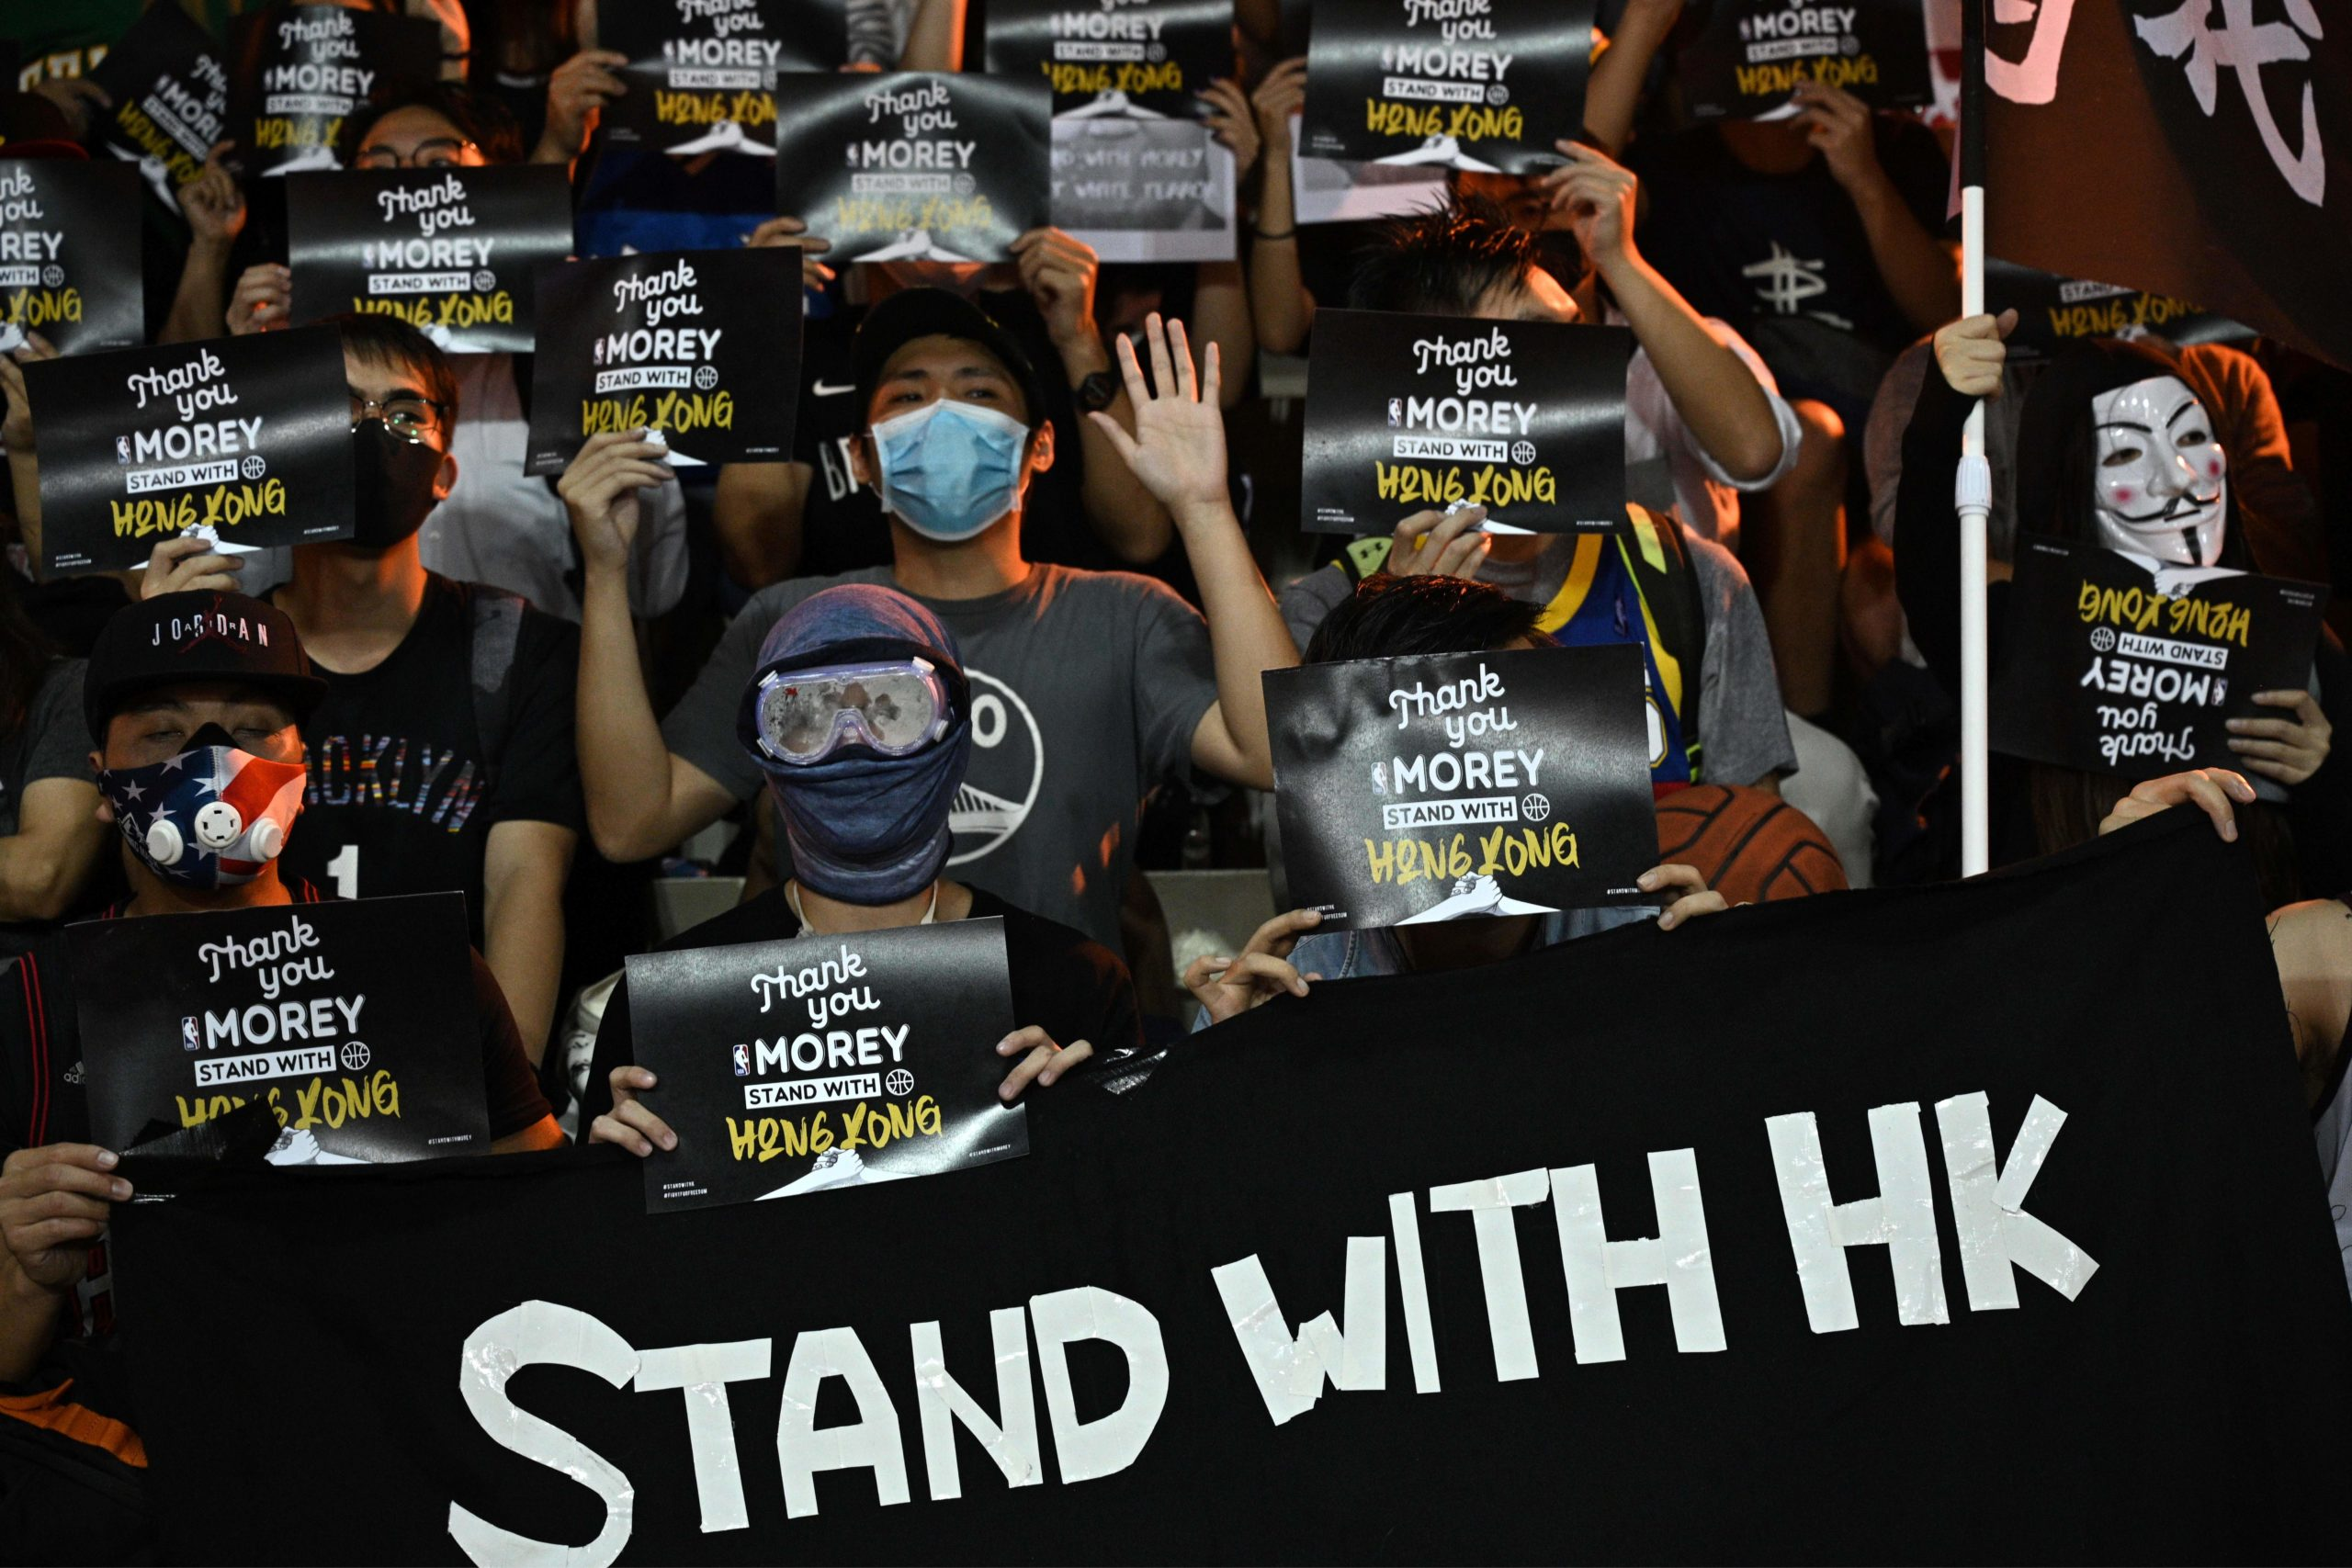 """Protesters shout slogans as they hold flyers at the Southorn Playground in Hong Kong on October 15, 2019, during a rally in support of NBA basketball Rockets general manager Daryl Morey and against comments made by Lakers superstar LeBron James. - US basketball superstar LeBron James on October 14, 2019, has sharply criticised a Houston Rockets executive for angering China with a tweet supporting protesters in Hong Kong, saying the executive was """"misinformed"""" and should have kept his mouth shut. (Photo by Anthony Wallace/AFP via Getty Images)"""